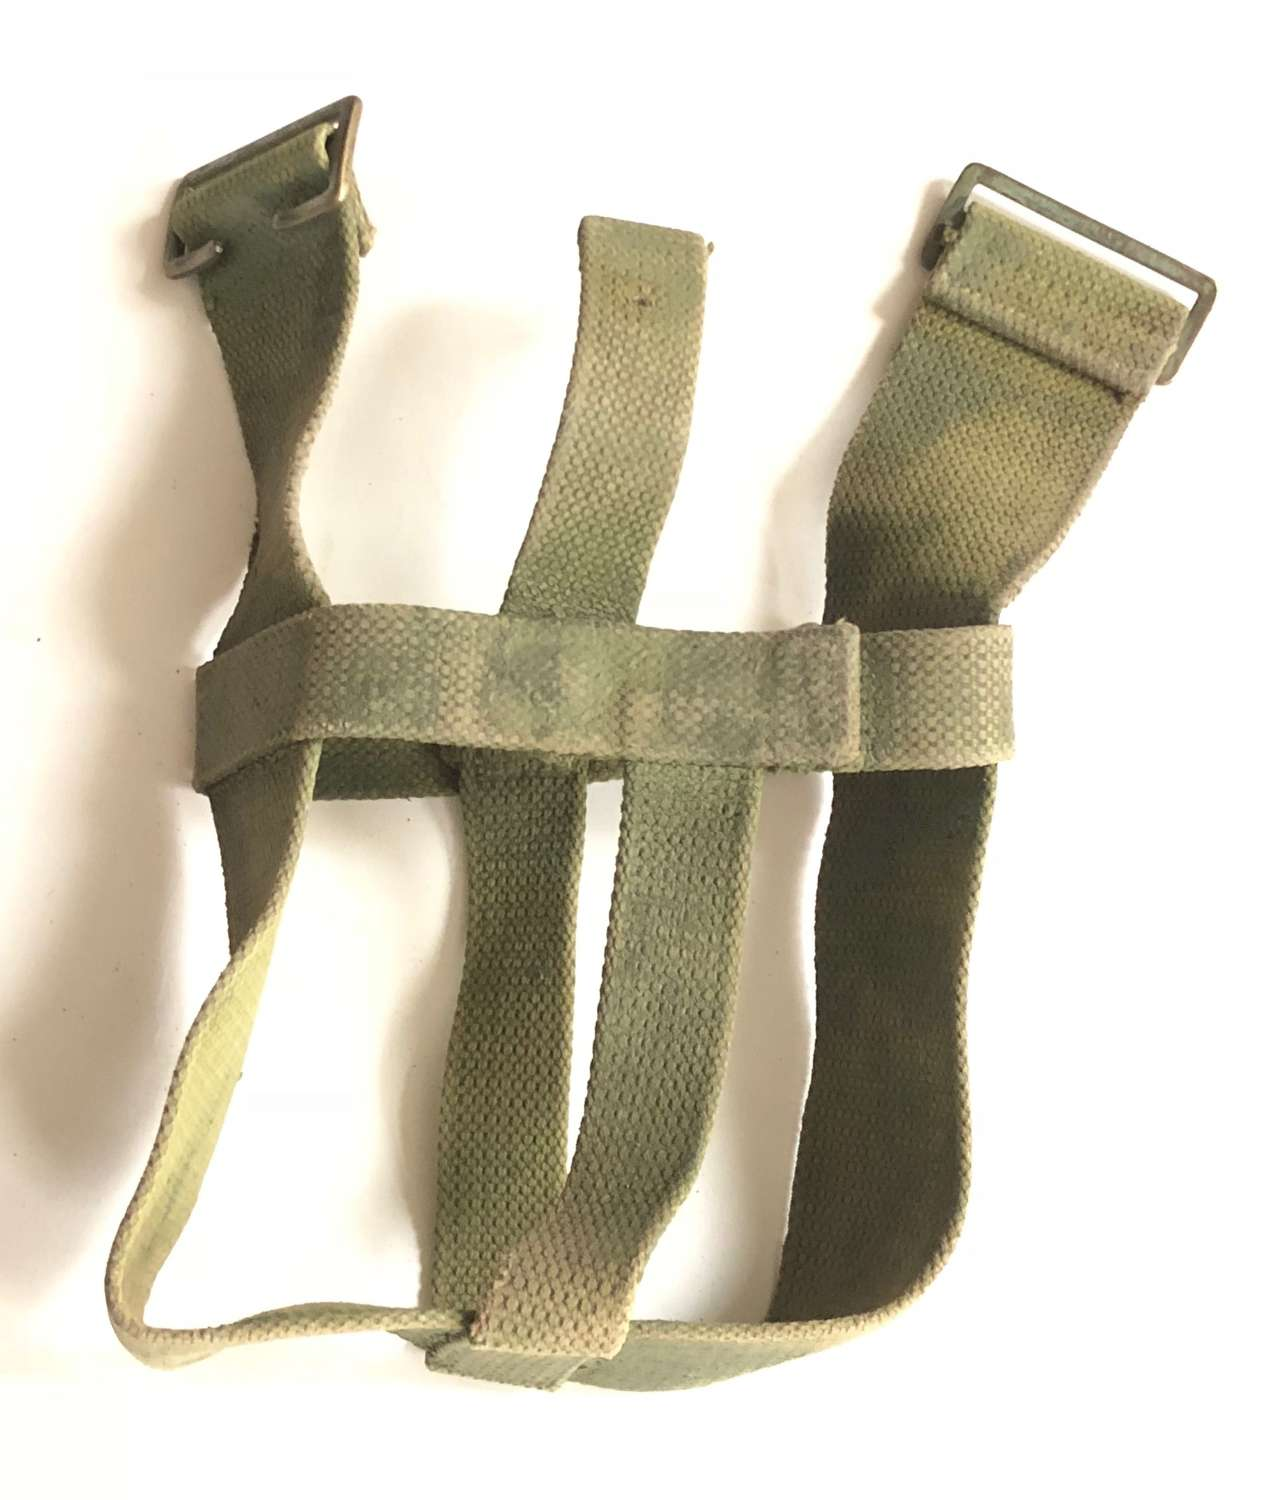 WW1 1908 Pattern Webbing Water Bottle Carrier Harness.